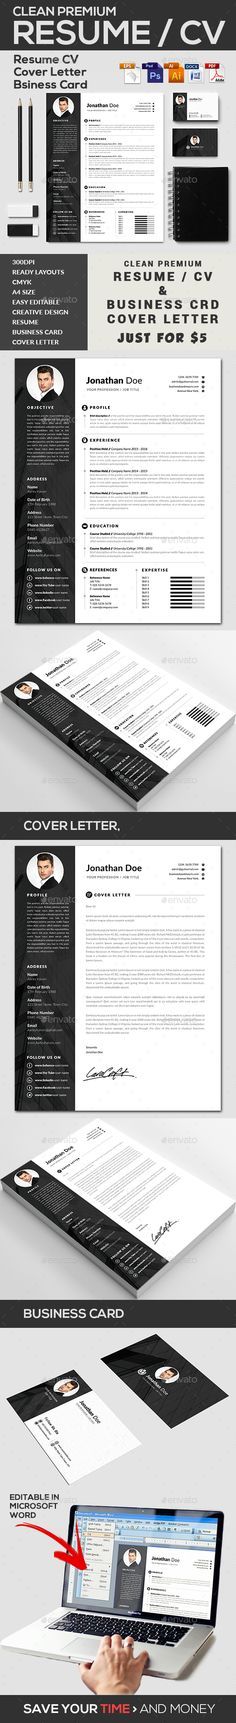 Illustrator Resume Templates Resume Templategresume On Creativemarket  Beautiful Resume